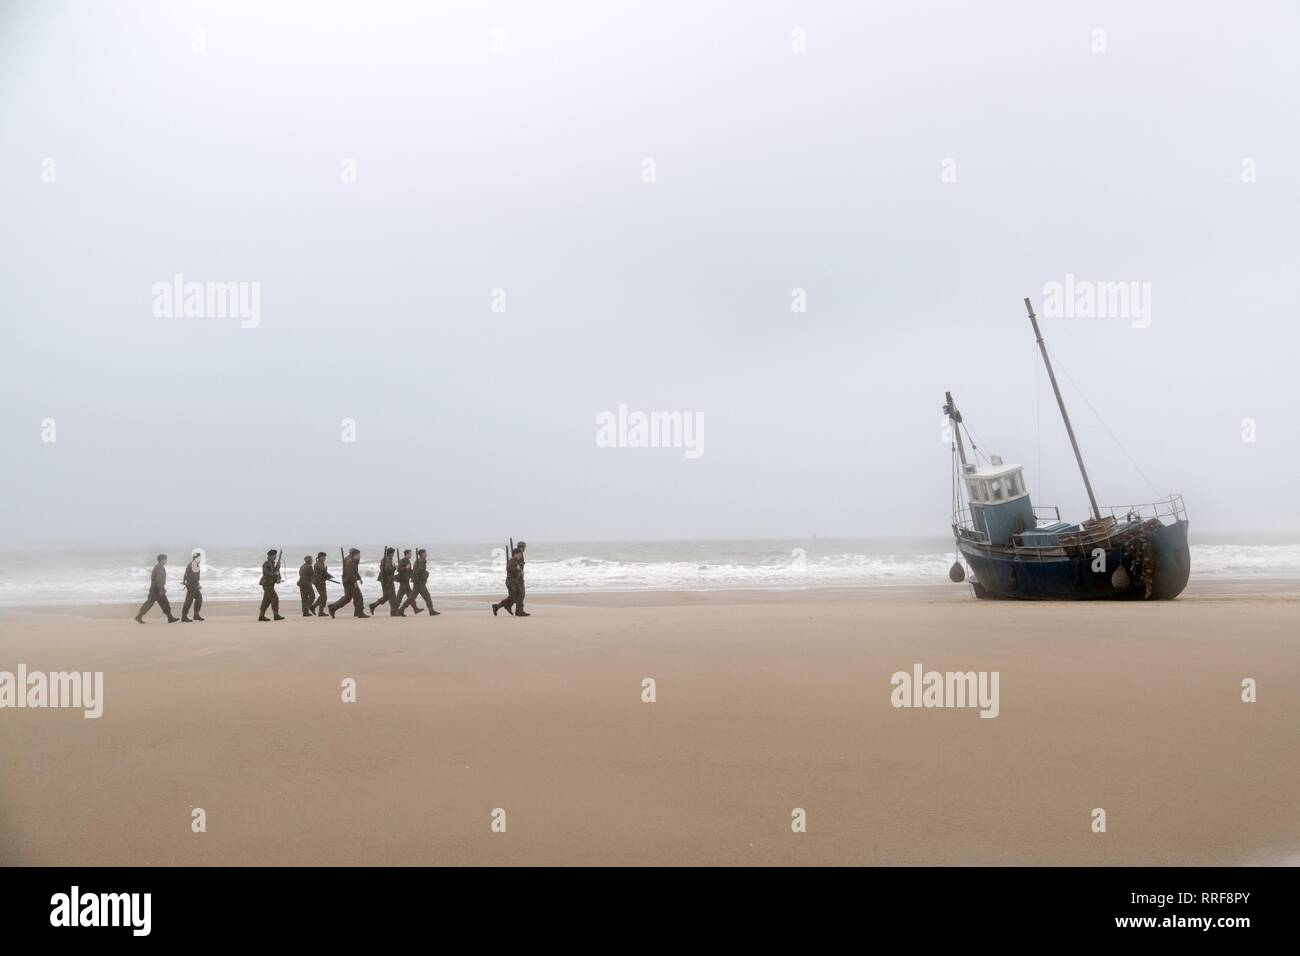 DUNKIRK, SOLDIERS APPROACH BOAT, 2017 - Stock Image